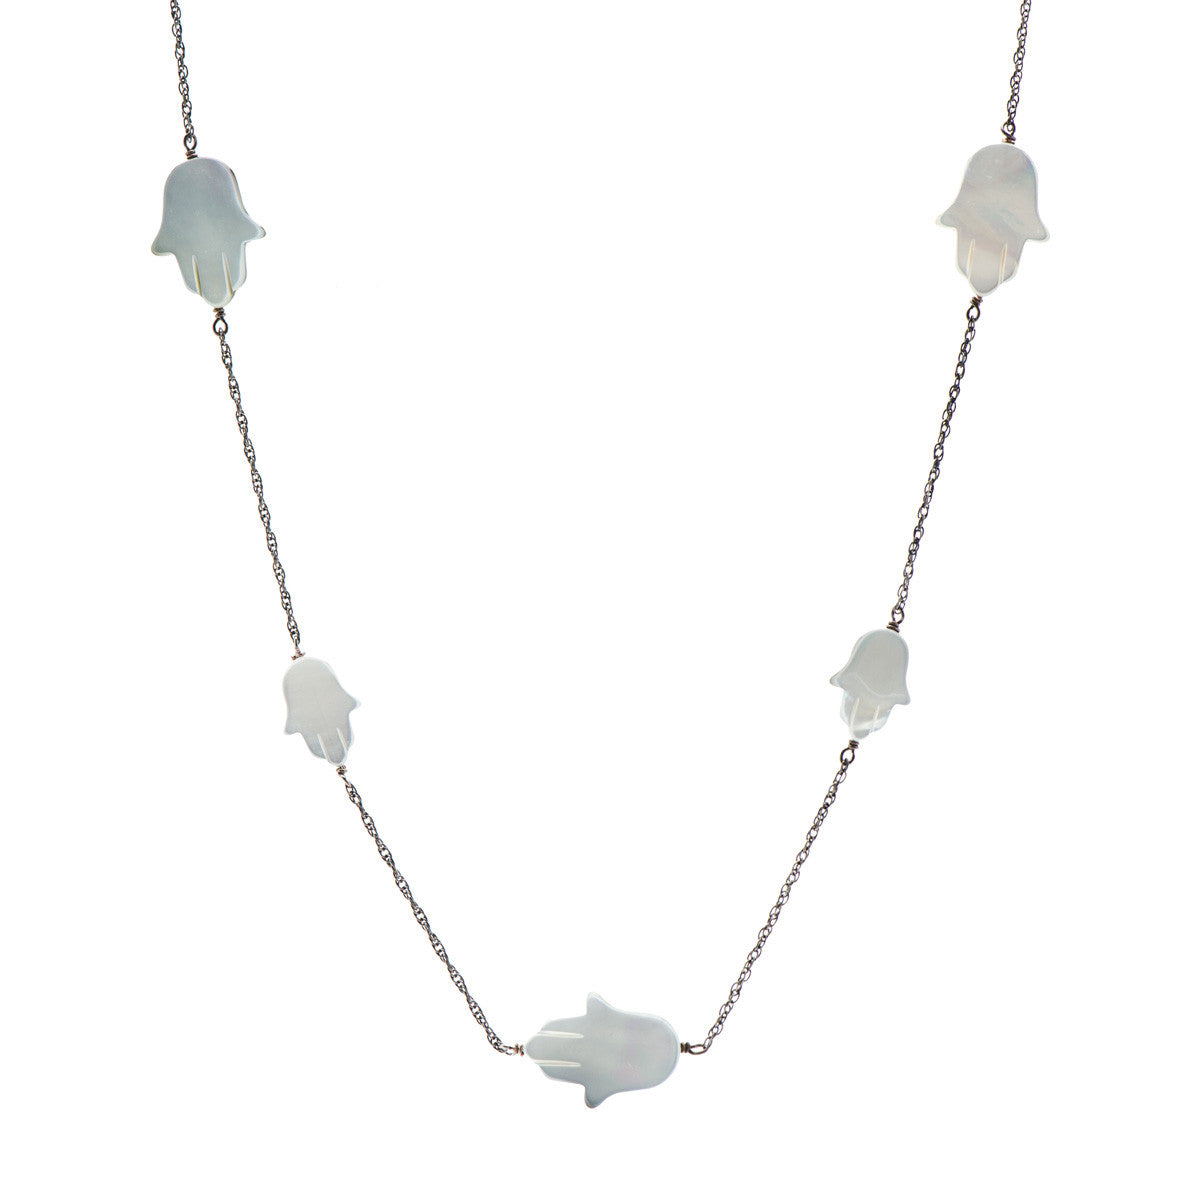 Long Hamsa Necklace in Mother of Pearl on Gunmetal Chain